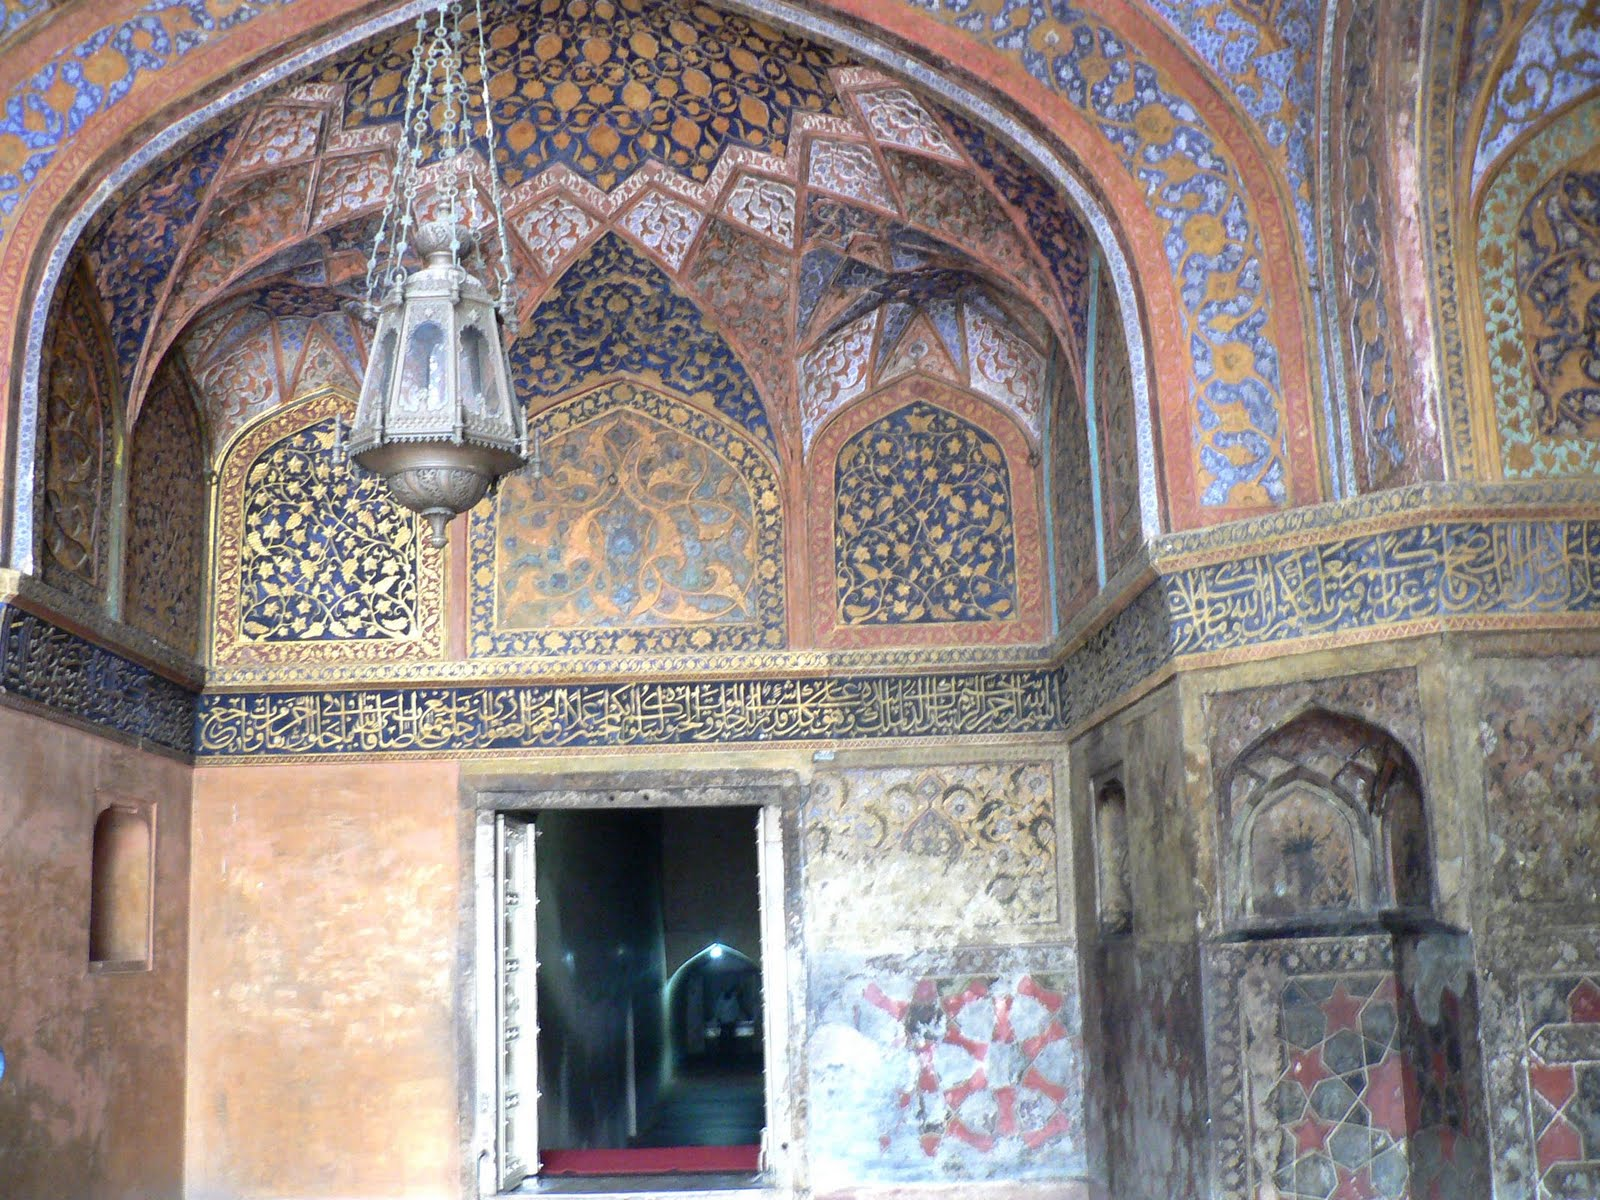 Akbar tomb historical facts and pictures the history hub for Pictures inside